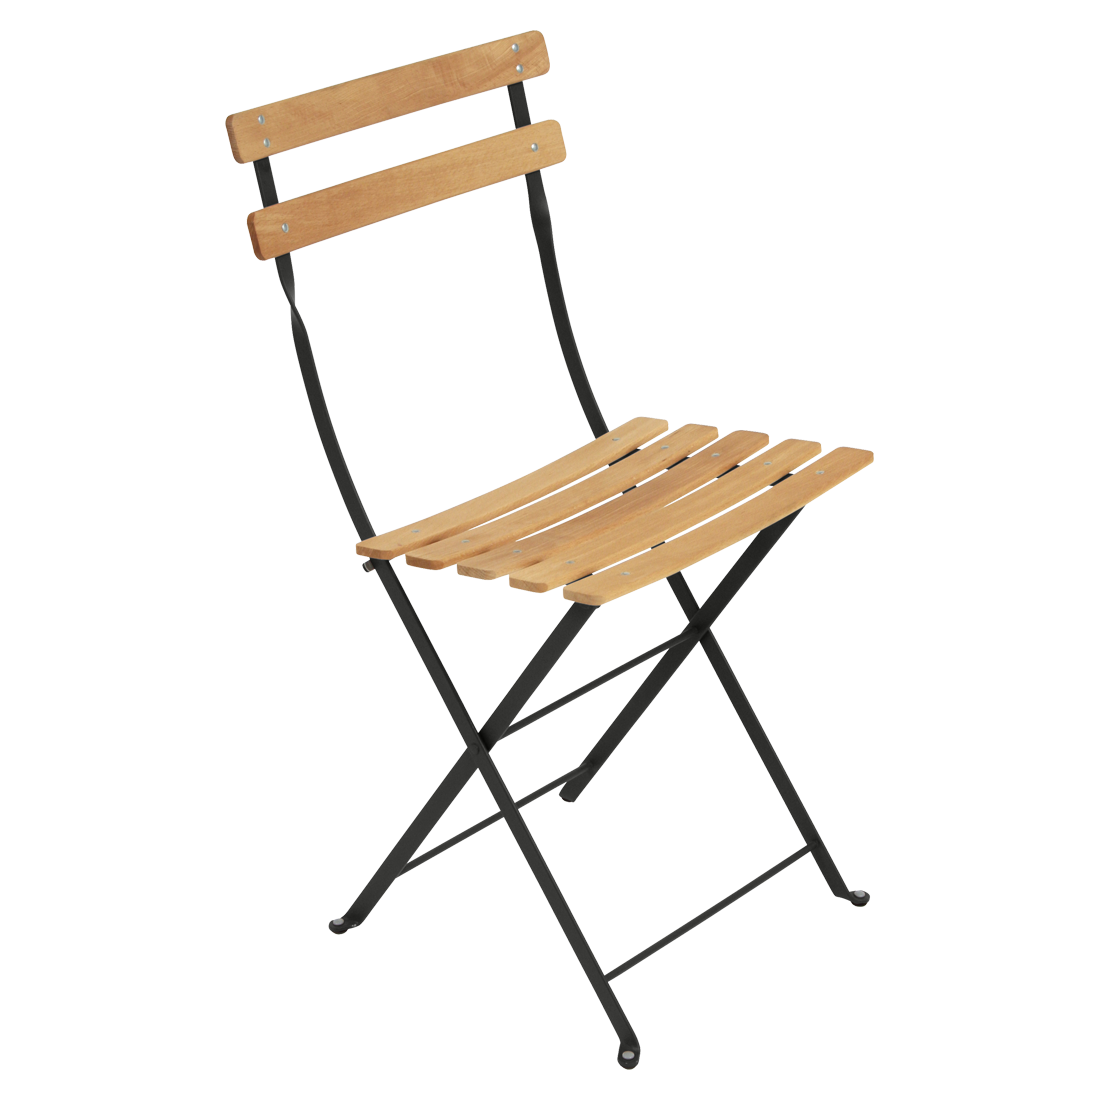 Bistro Naturel Chair, Metal And Wood Chair, Outdoor Furniture